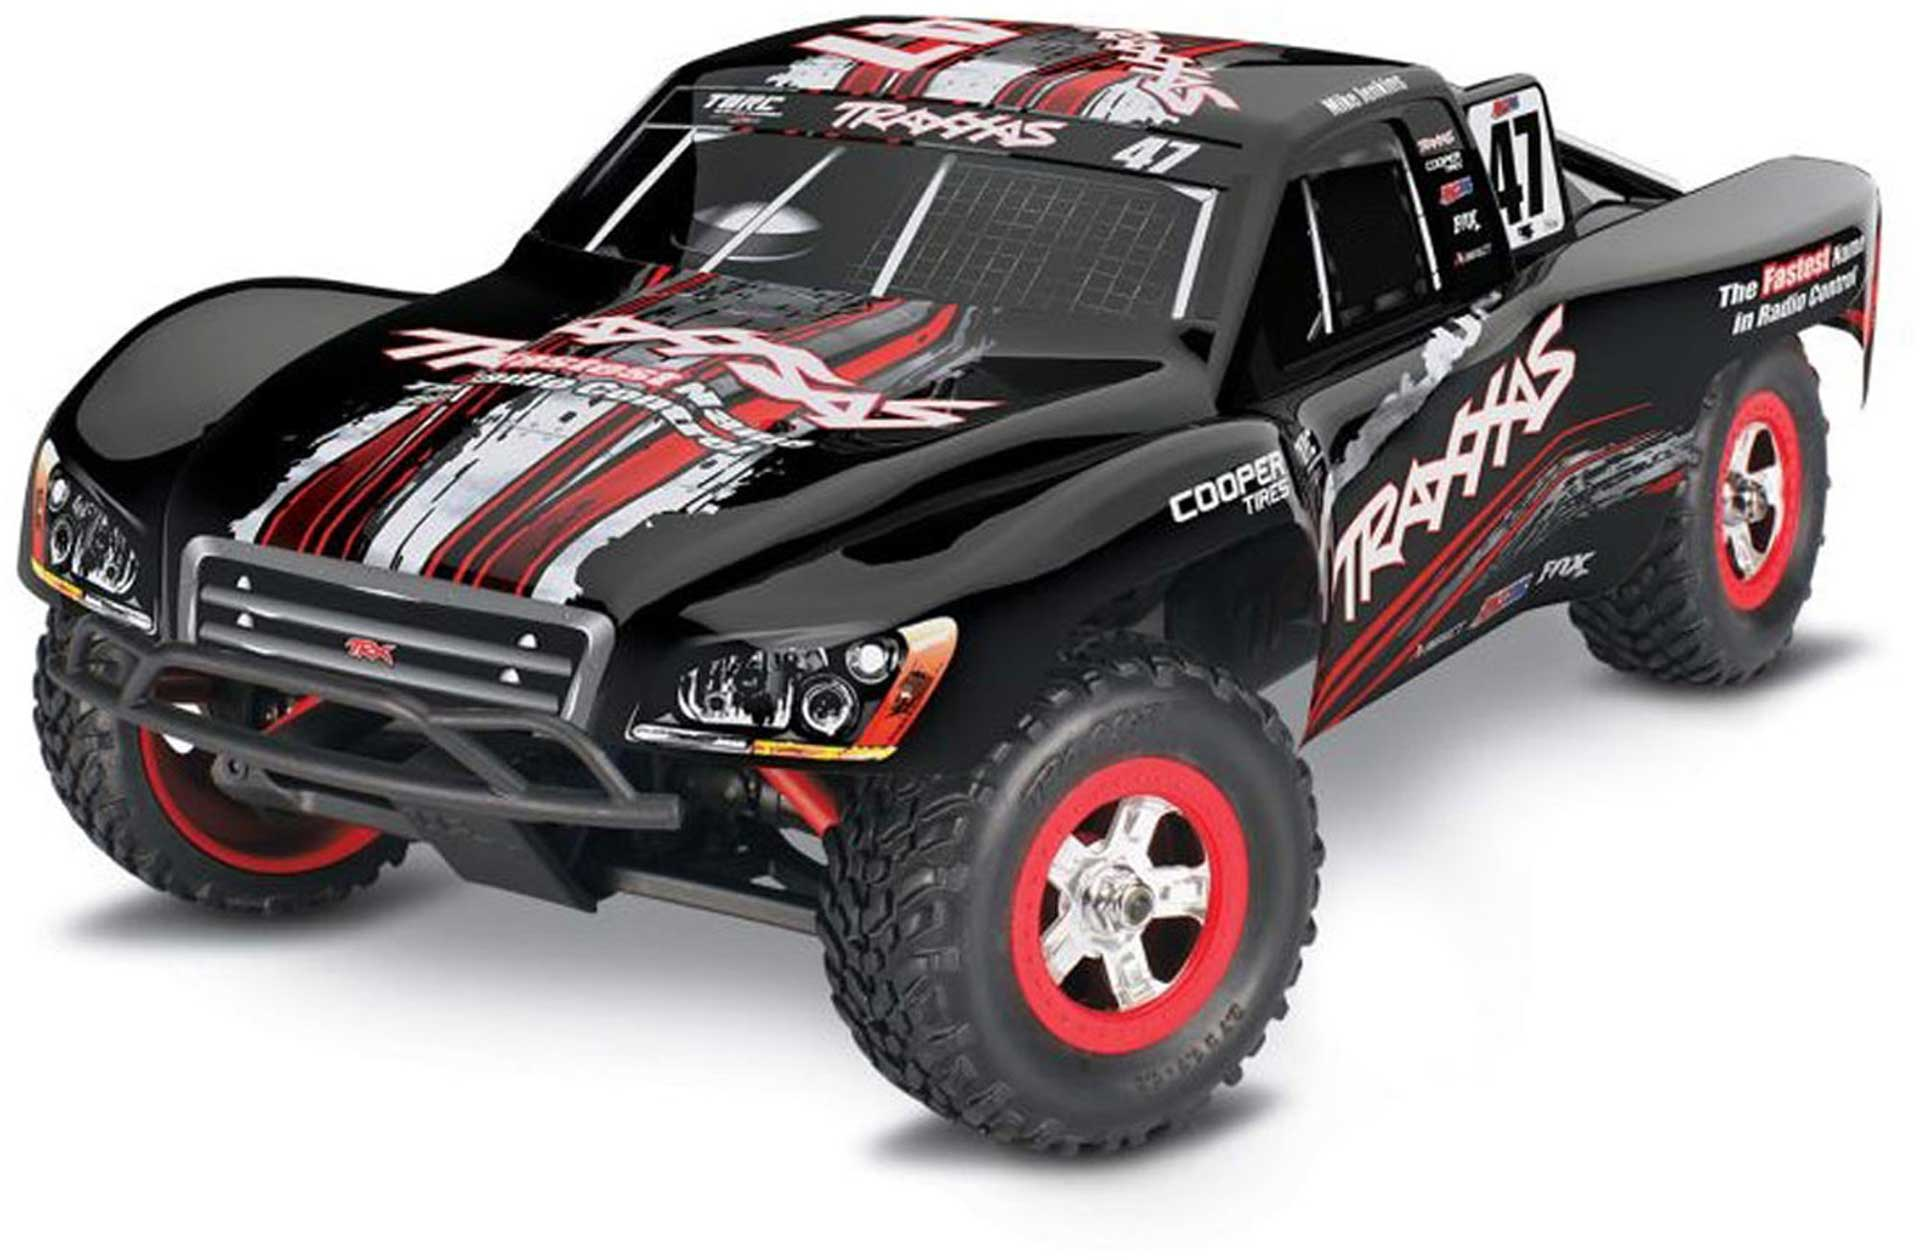 TRAXXAS SLASH 4X4 #47 MIKEJENKINS MIKE RTR 1/16 4WD +12V-CHARGER+BATTERY SHORT-COURSE-RACE-TRUCK BRUSHED